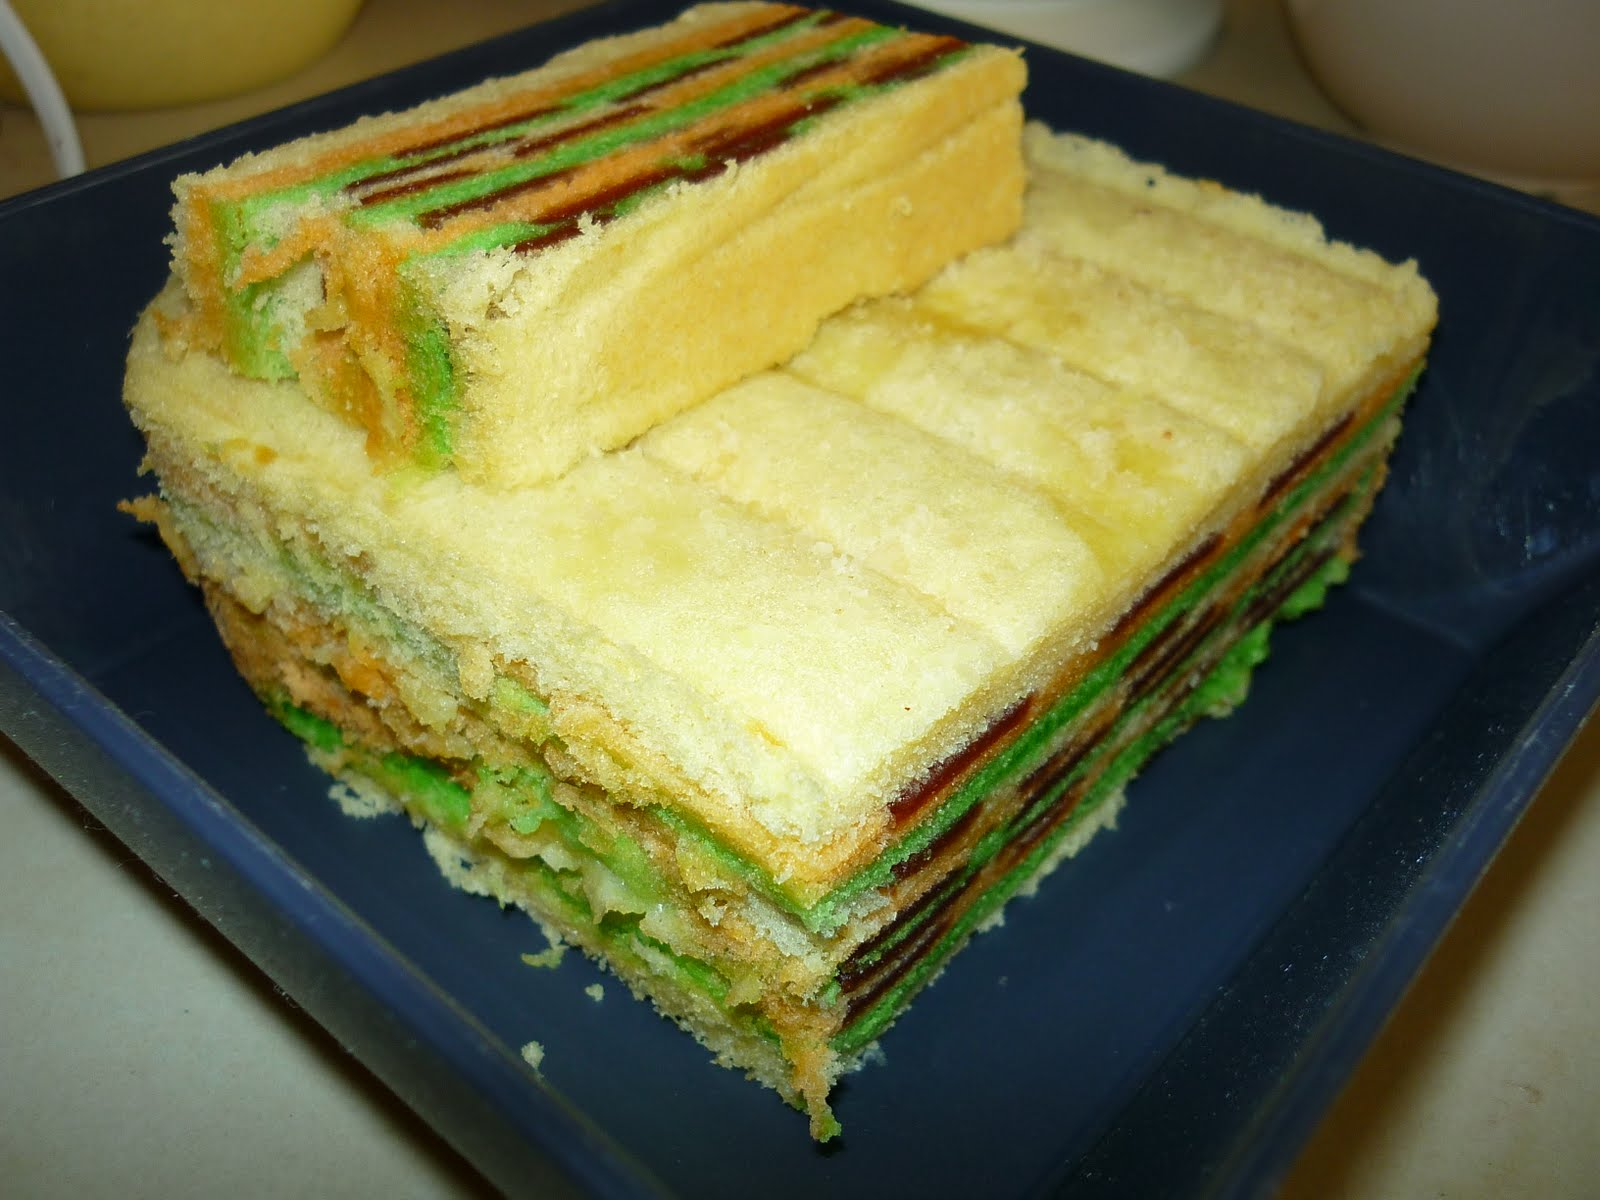 kek lapis Dayang salhah kek lapis best gift idea for any festive event  get one today .